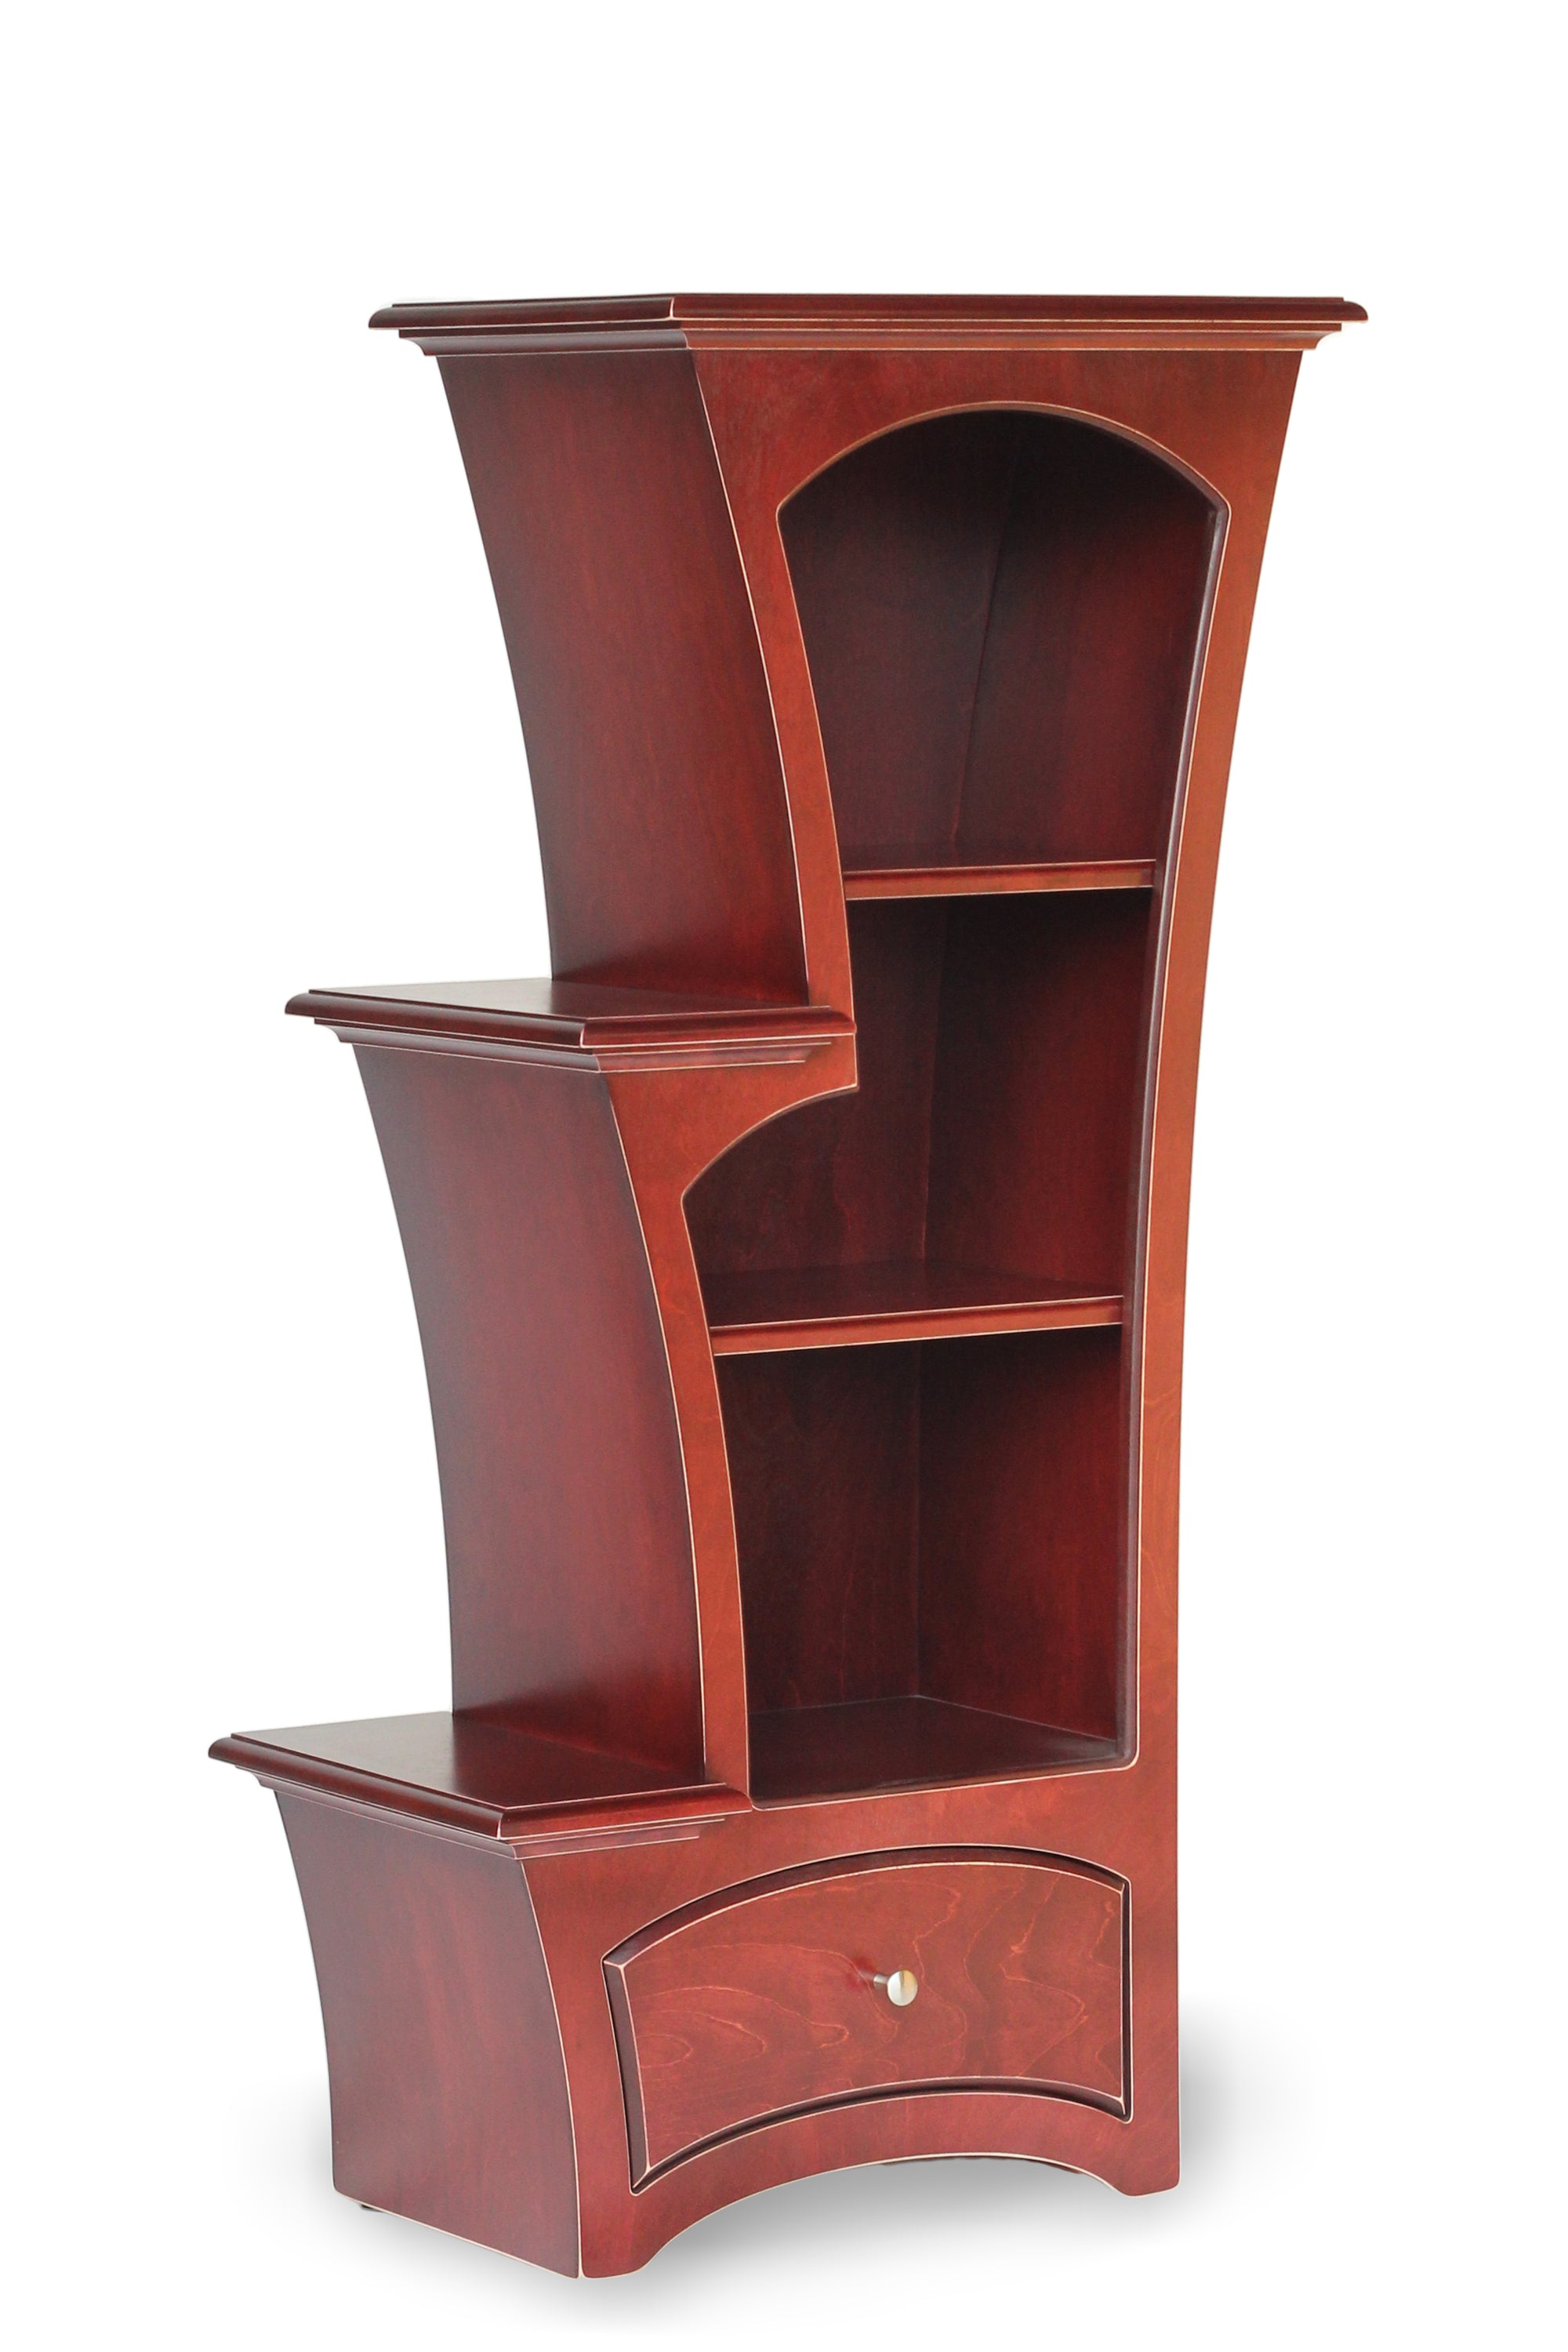 How to dust furniture - Bookcase No 7 In Redwood Stain By Dust Furniture